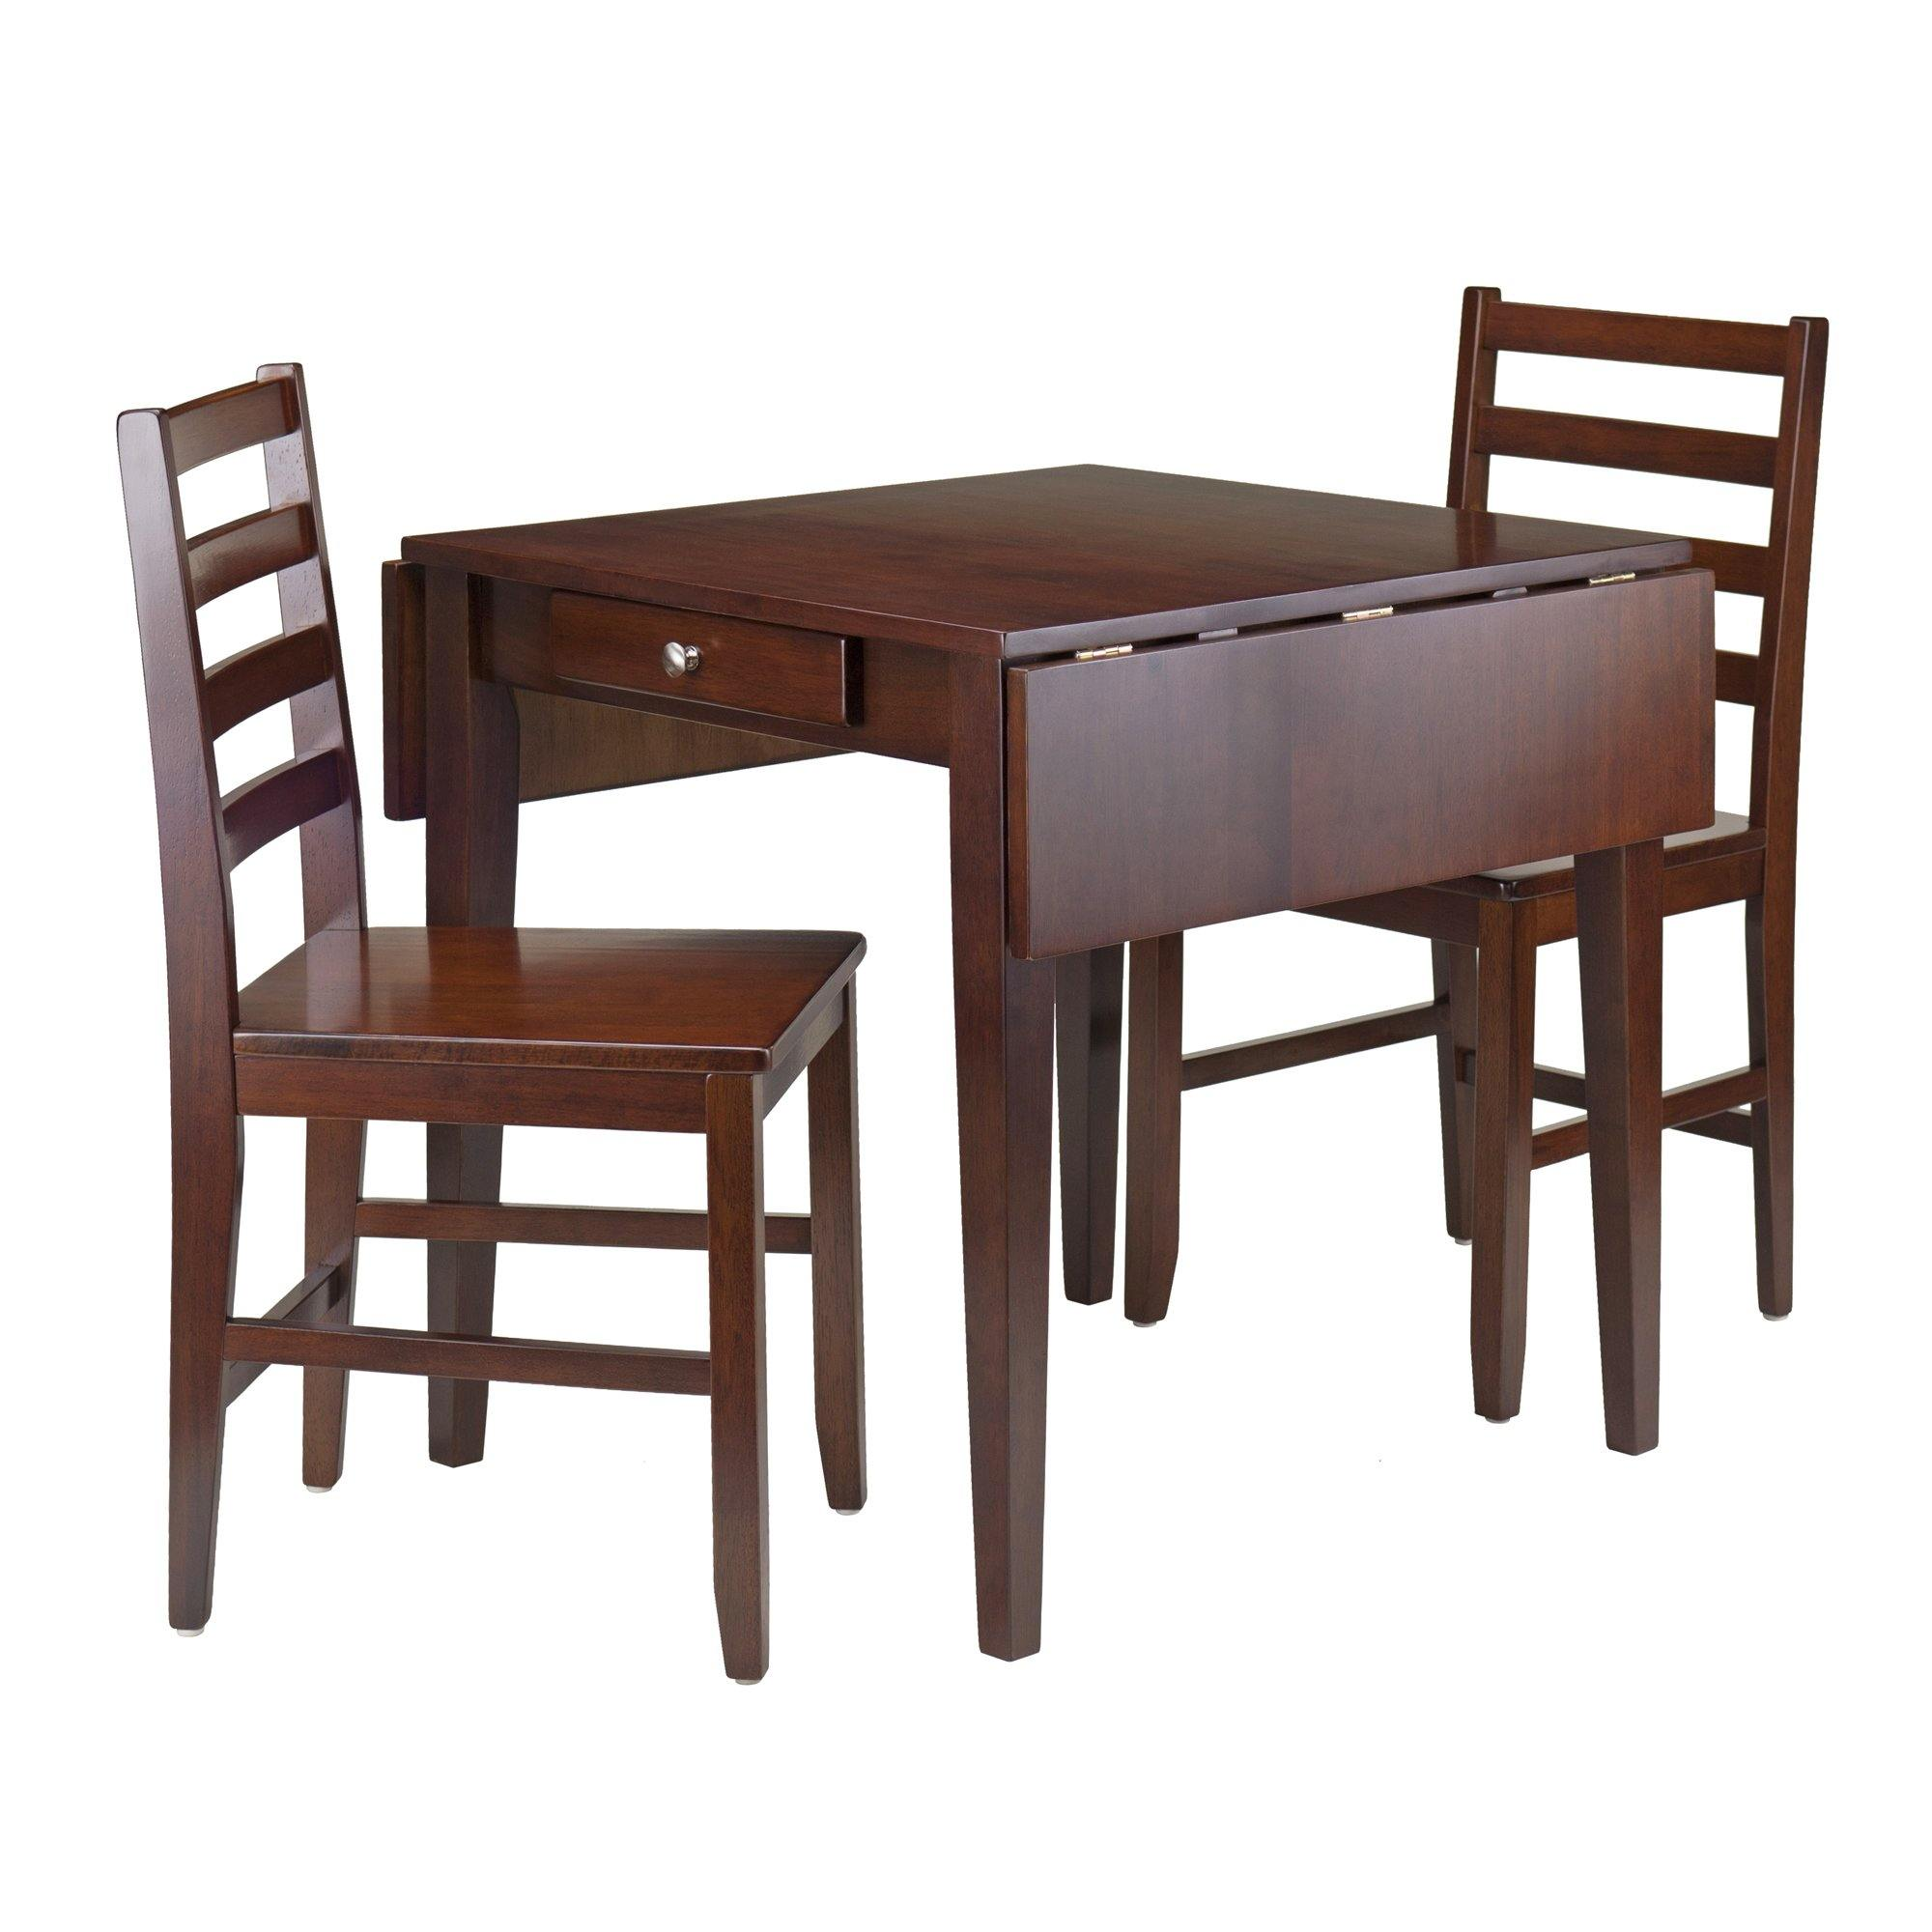 Hamilton 3-Pc Drop Leaf Dining Table with 2 Ladder Back Chairs - My USA Furniture